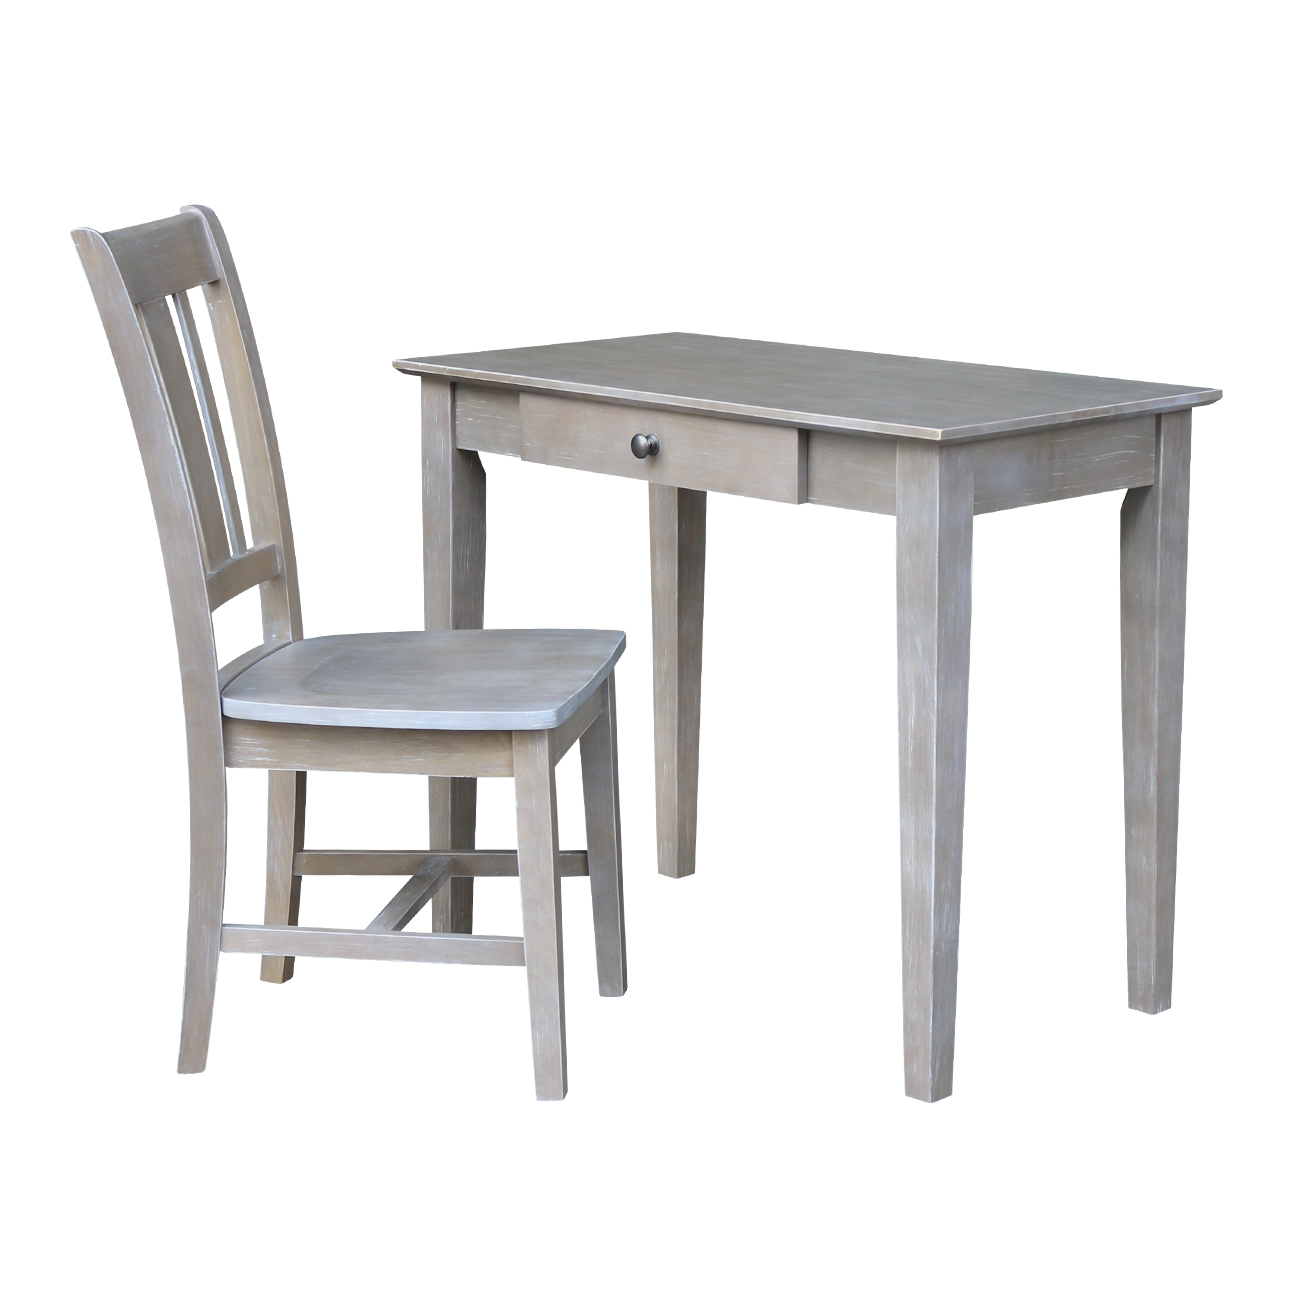 Small Size Desk with Chair Set in Washed Gray Taupe